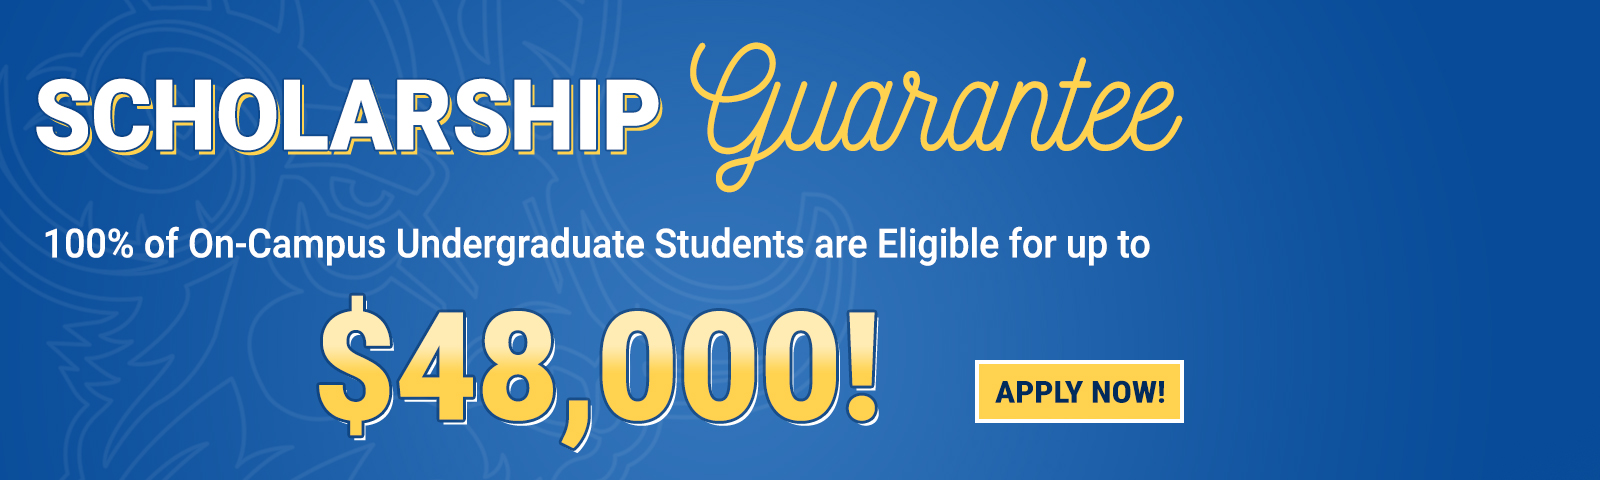 Apply Now for up to a $48,000 scholarship opportunity!